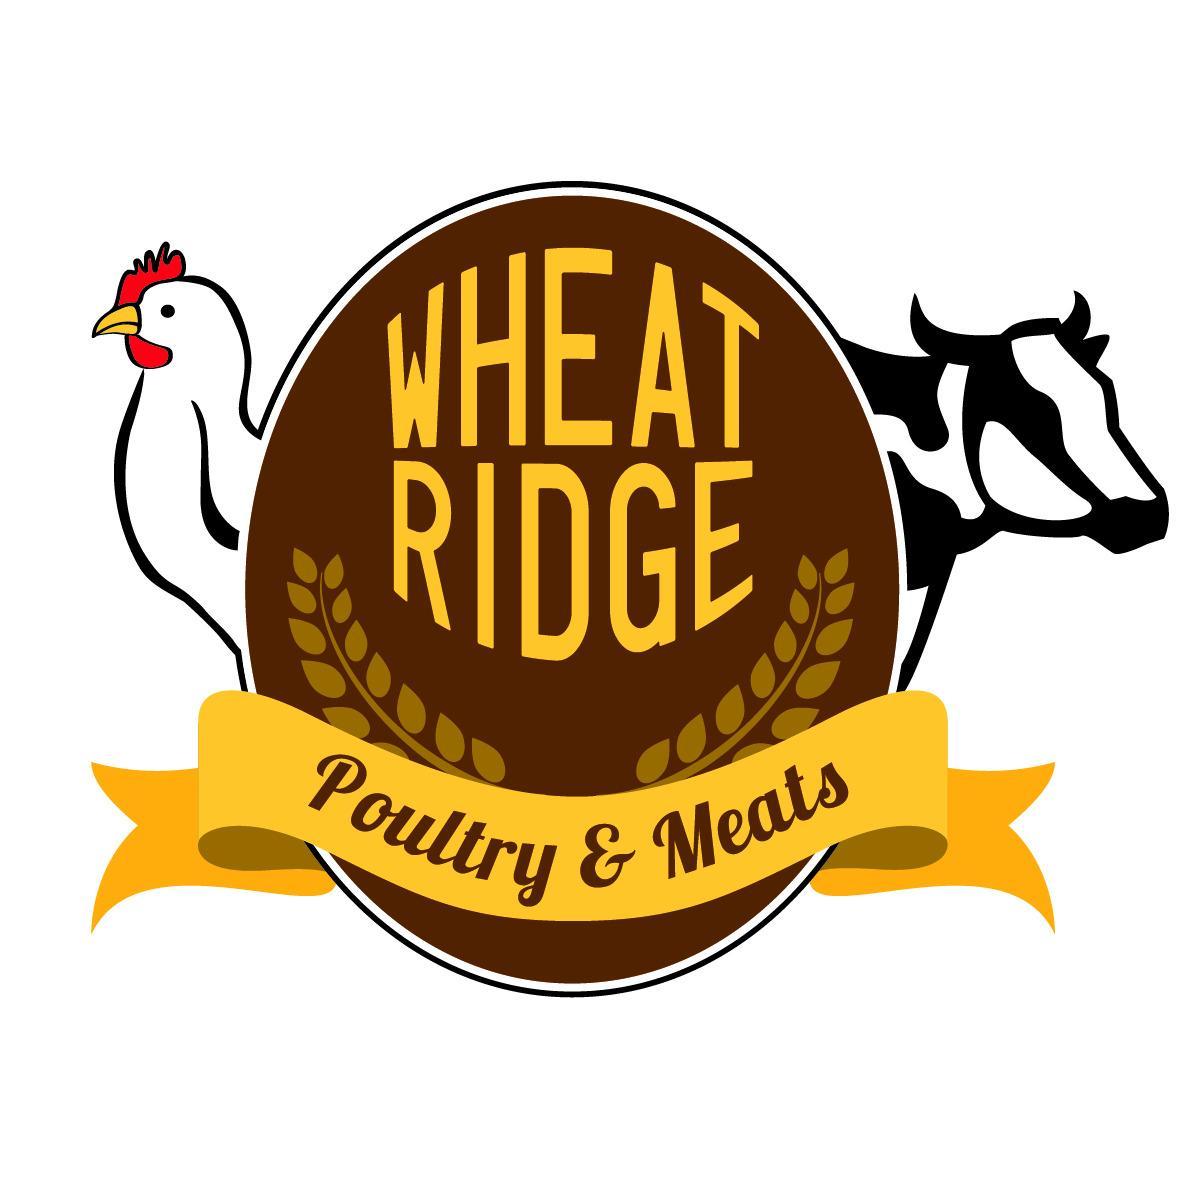 Wheat Ridge Poultry and Meats